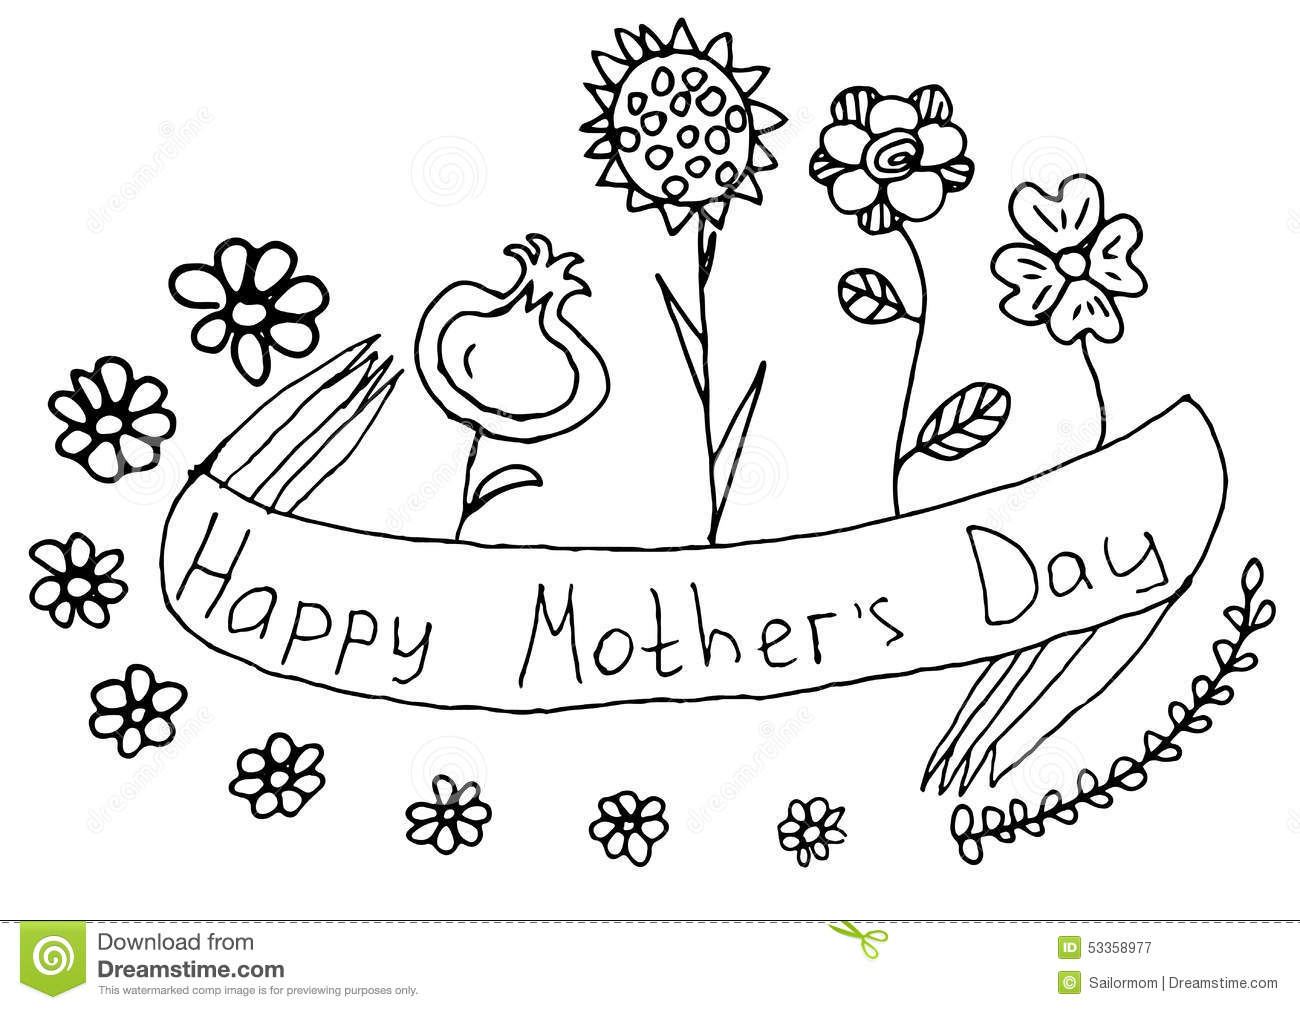 Doodle Happy Mothers Day Black Floral Greeting Stock